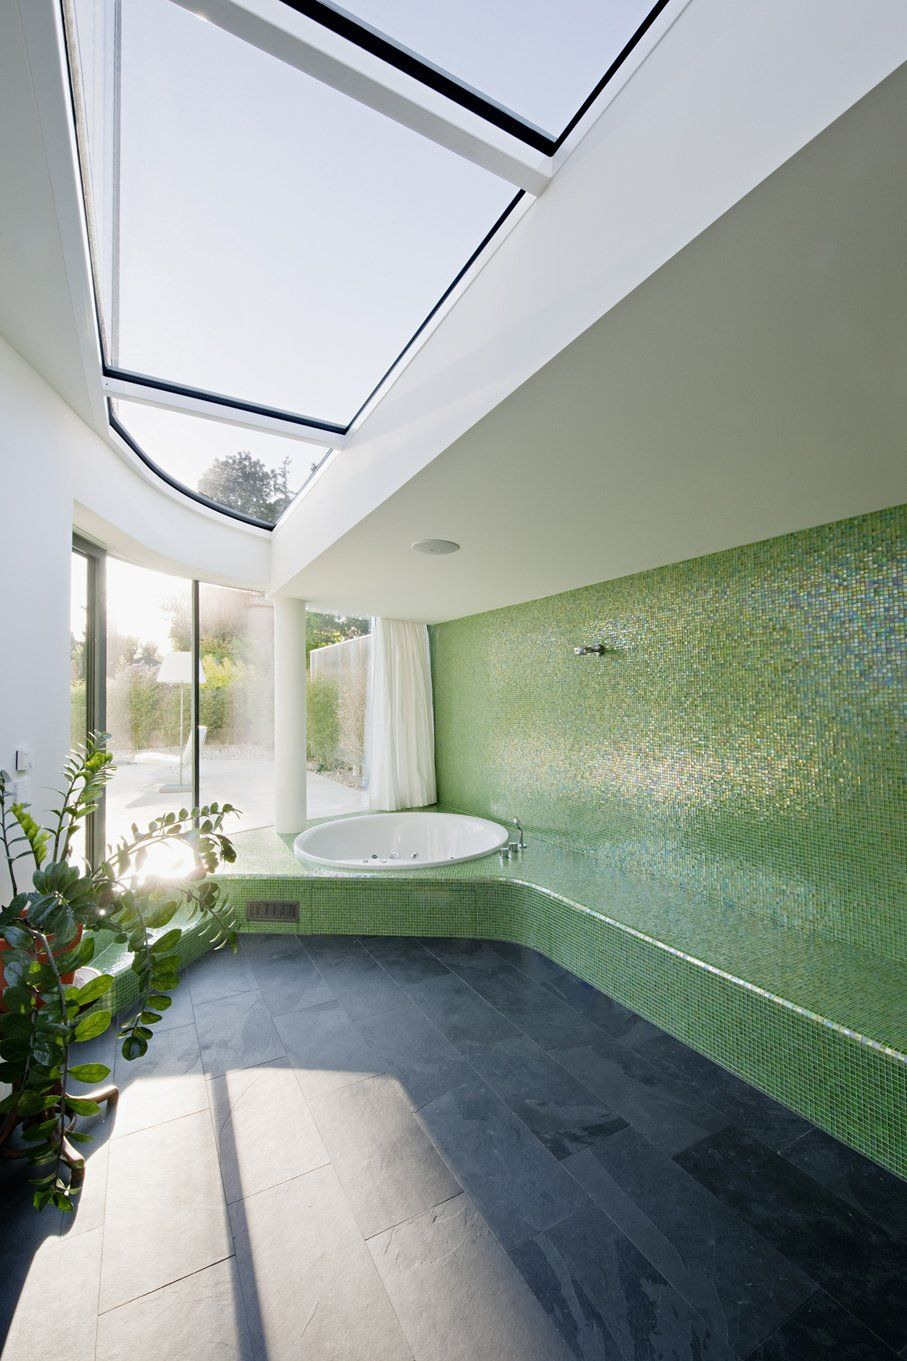 I Love The Tiled Wall And Enormous Skylights In This House.